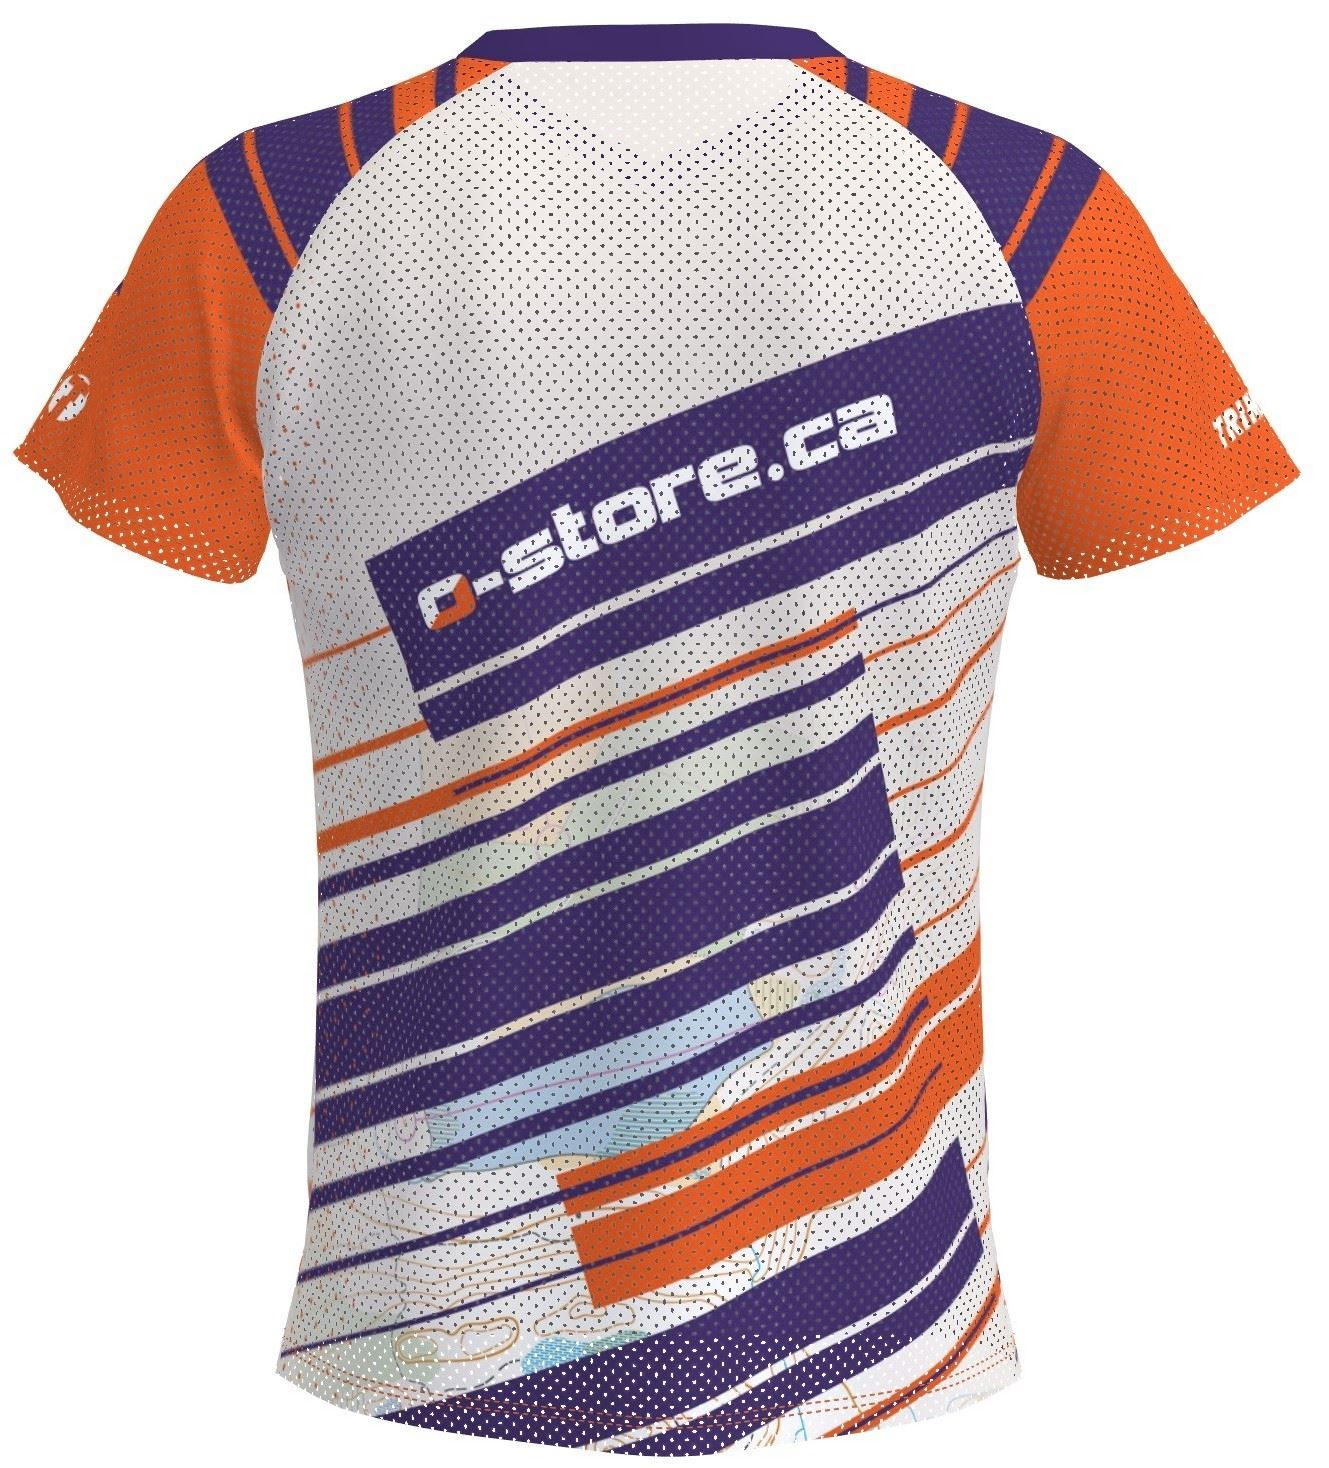 Picture of O-Store Mesh O-Shirt